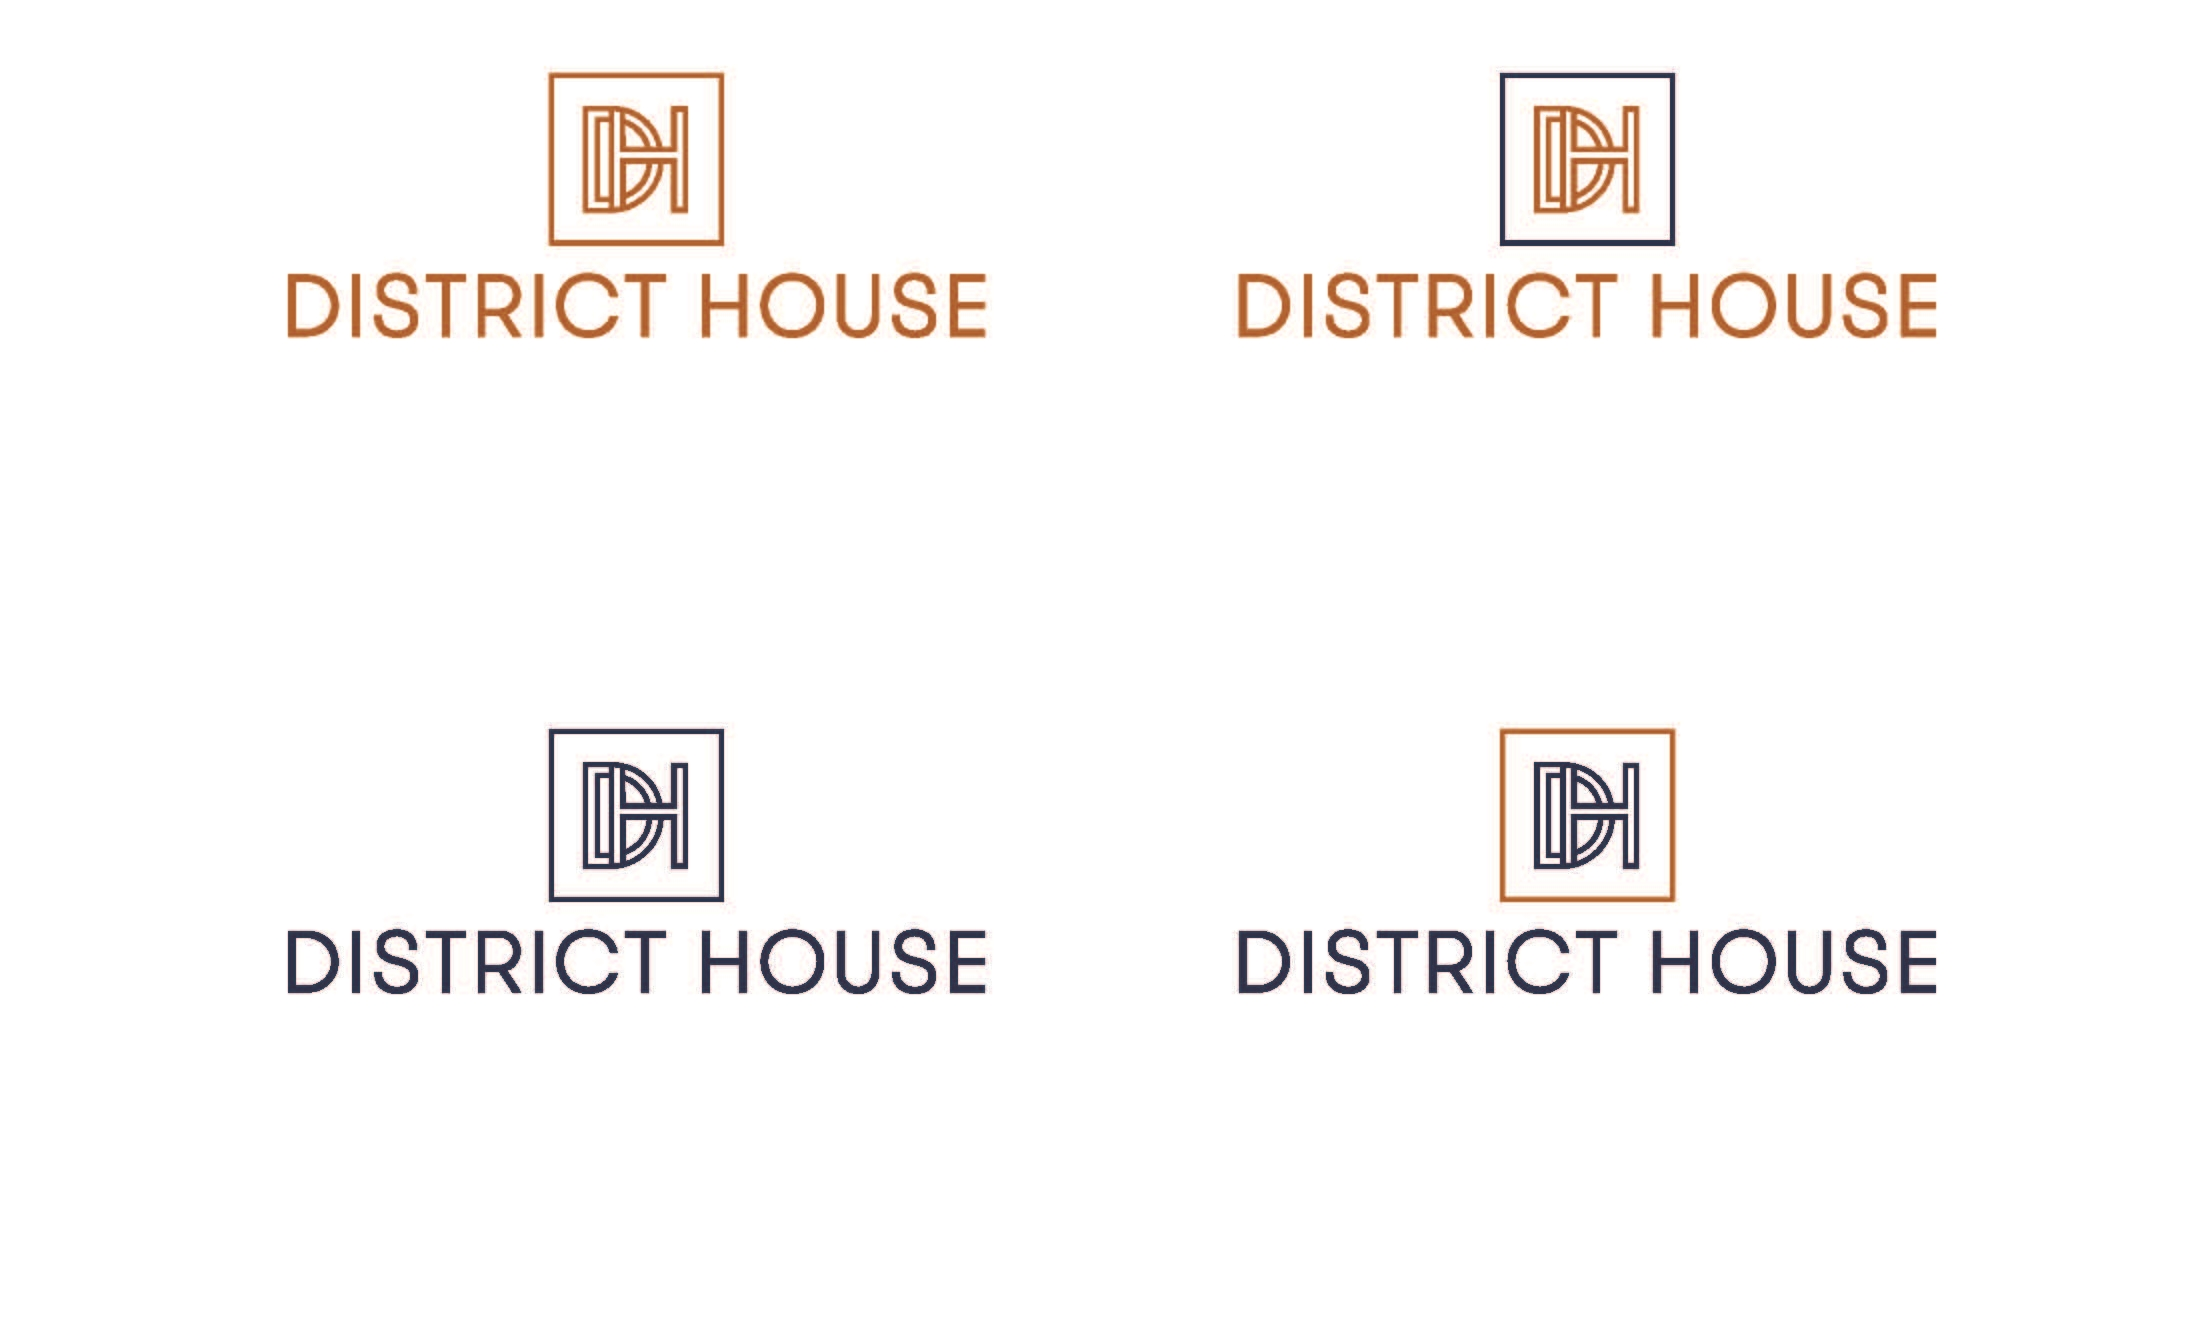 District House_Identity_Guide_031716_Page_07.jpg